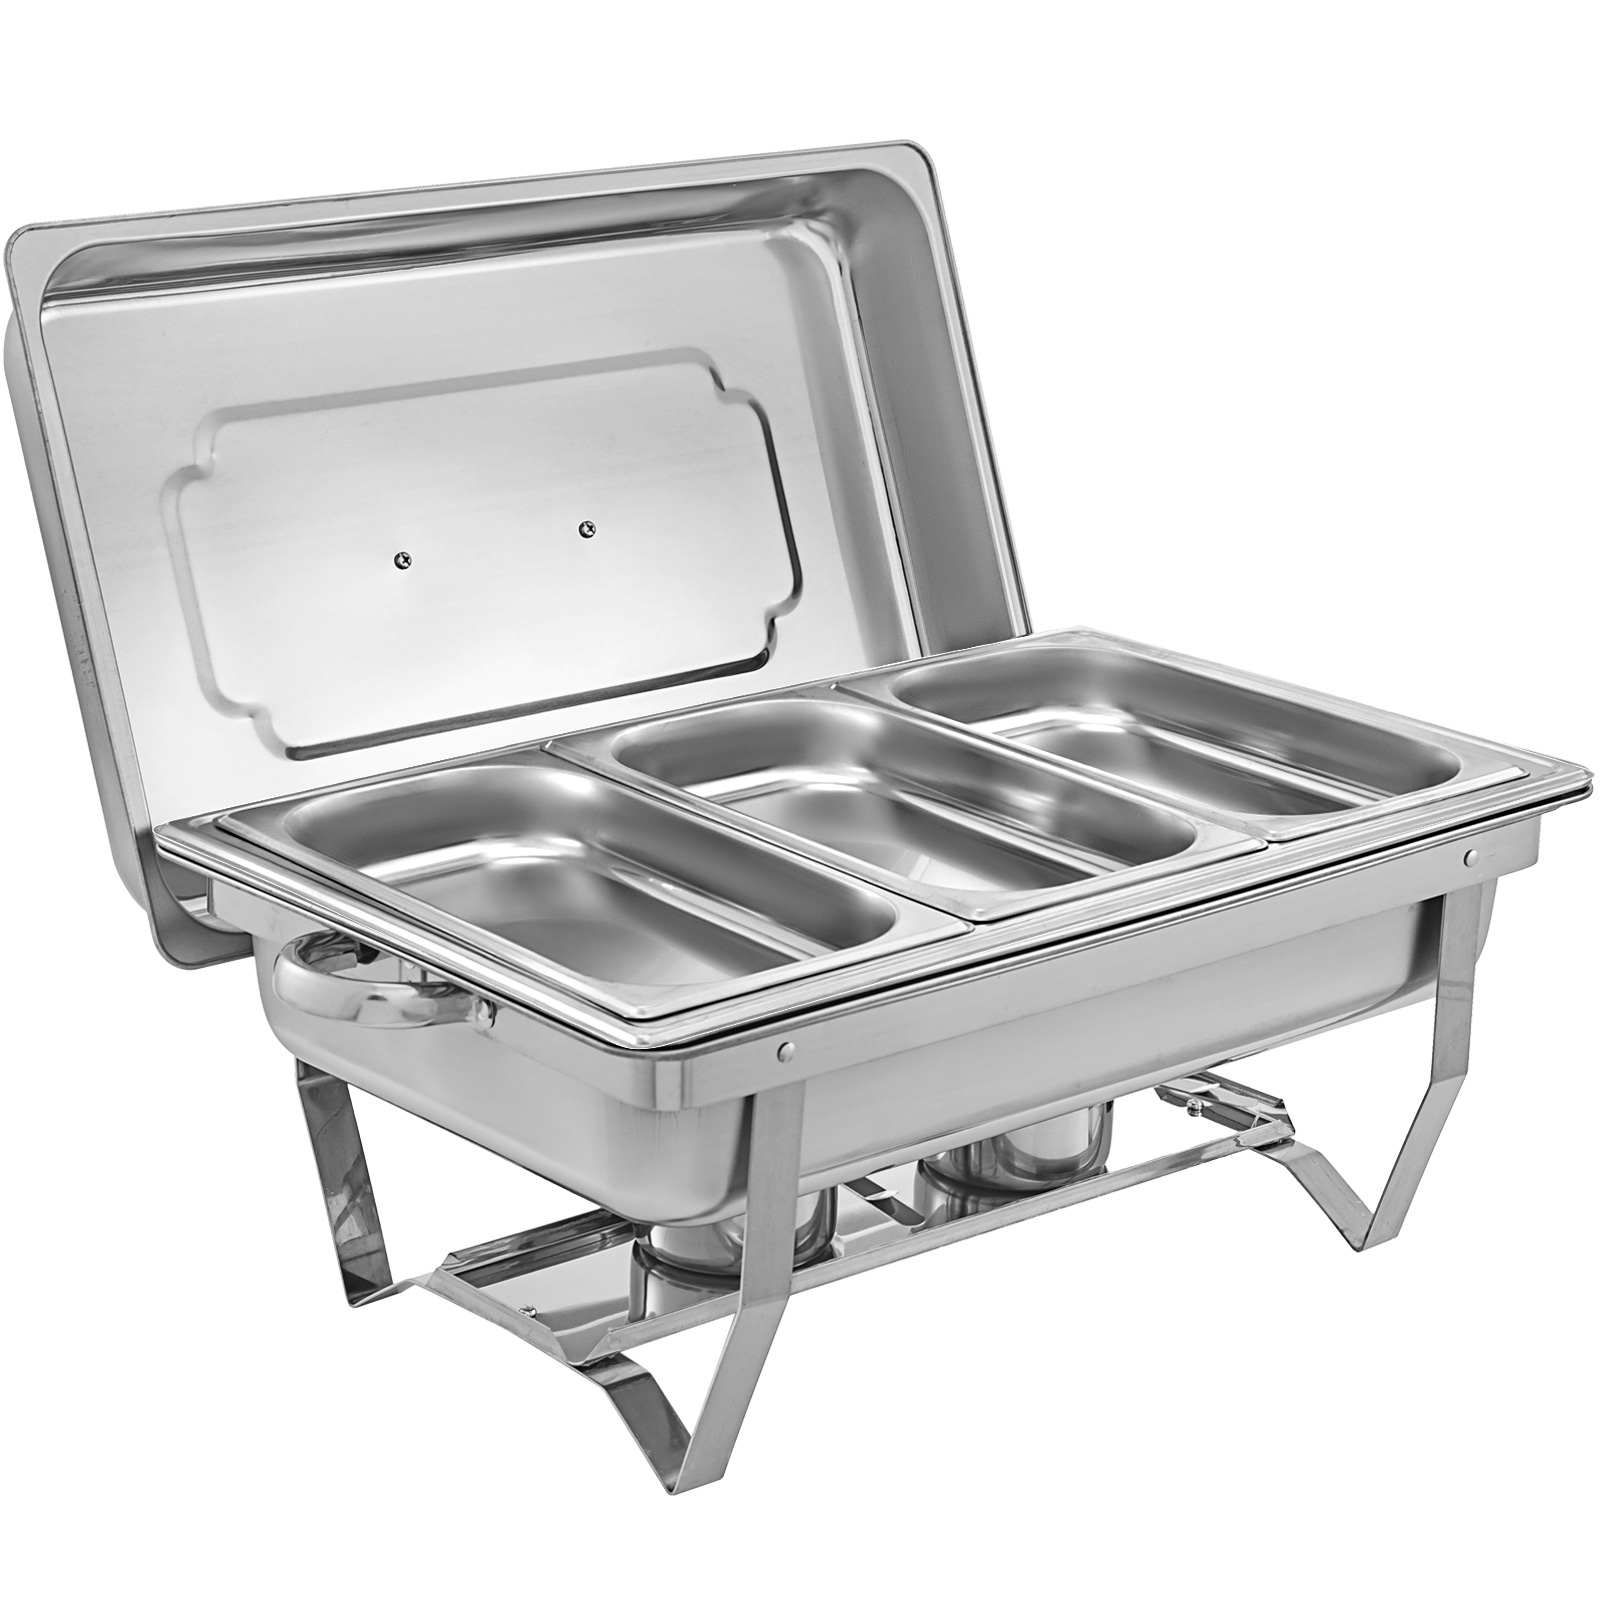 thumbnail 95 - Multi-Stainless-Steel-Chafing-Dish-Bain-Marie-Bow-Catering-Dish-Hotpot-Server